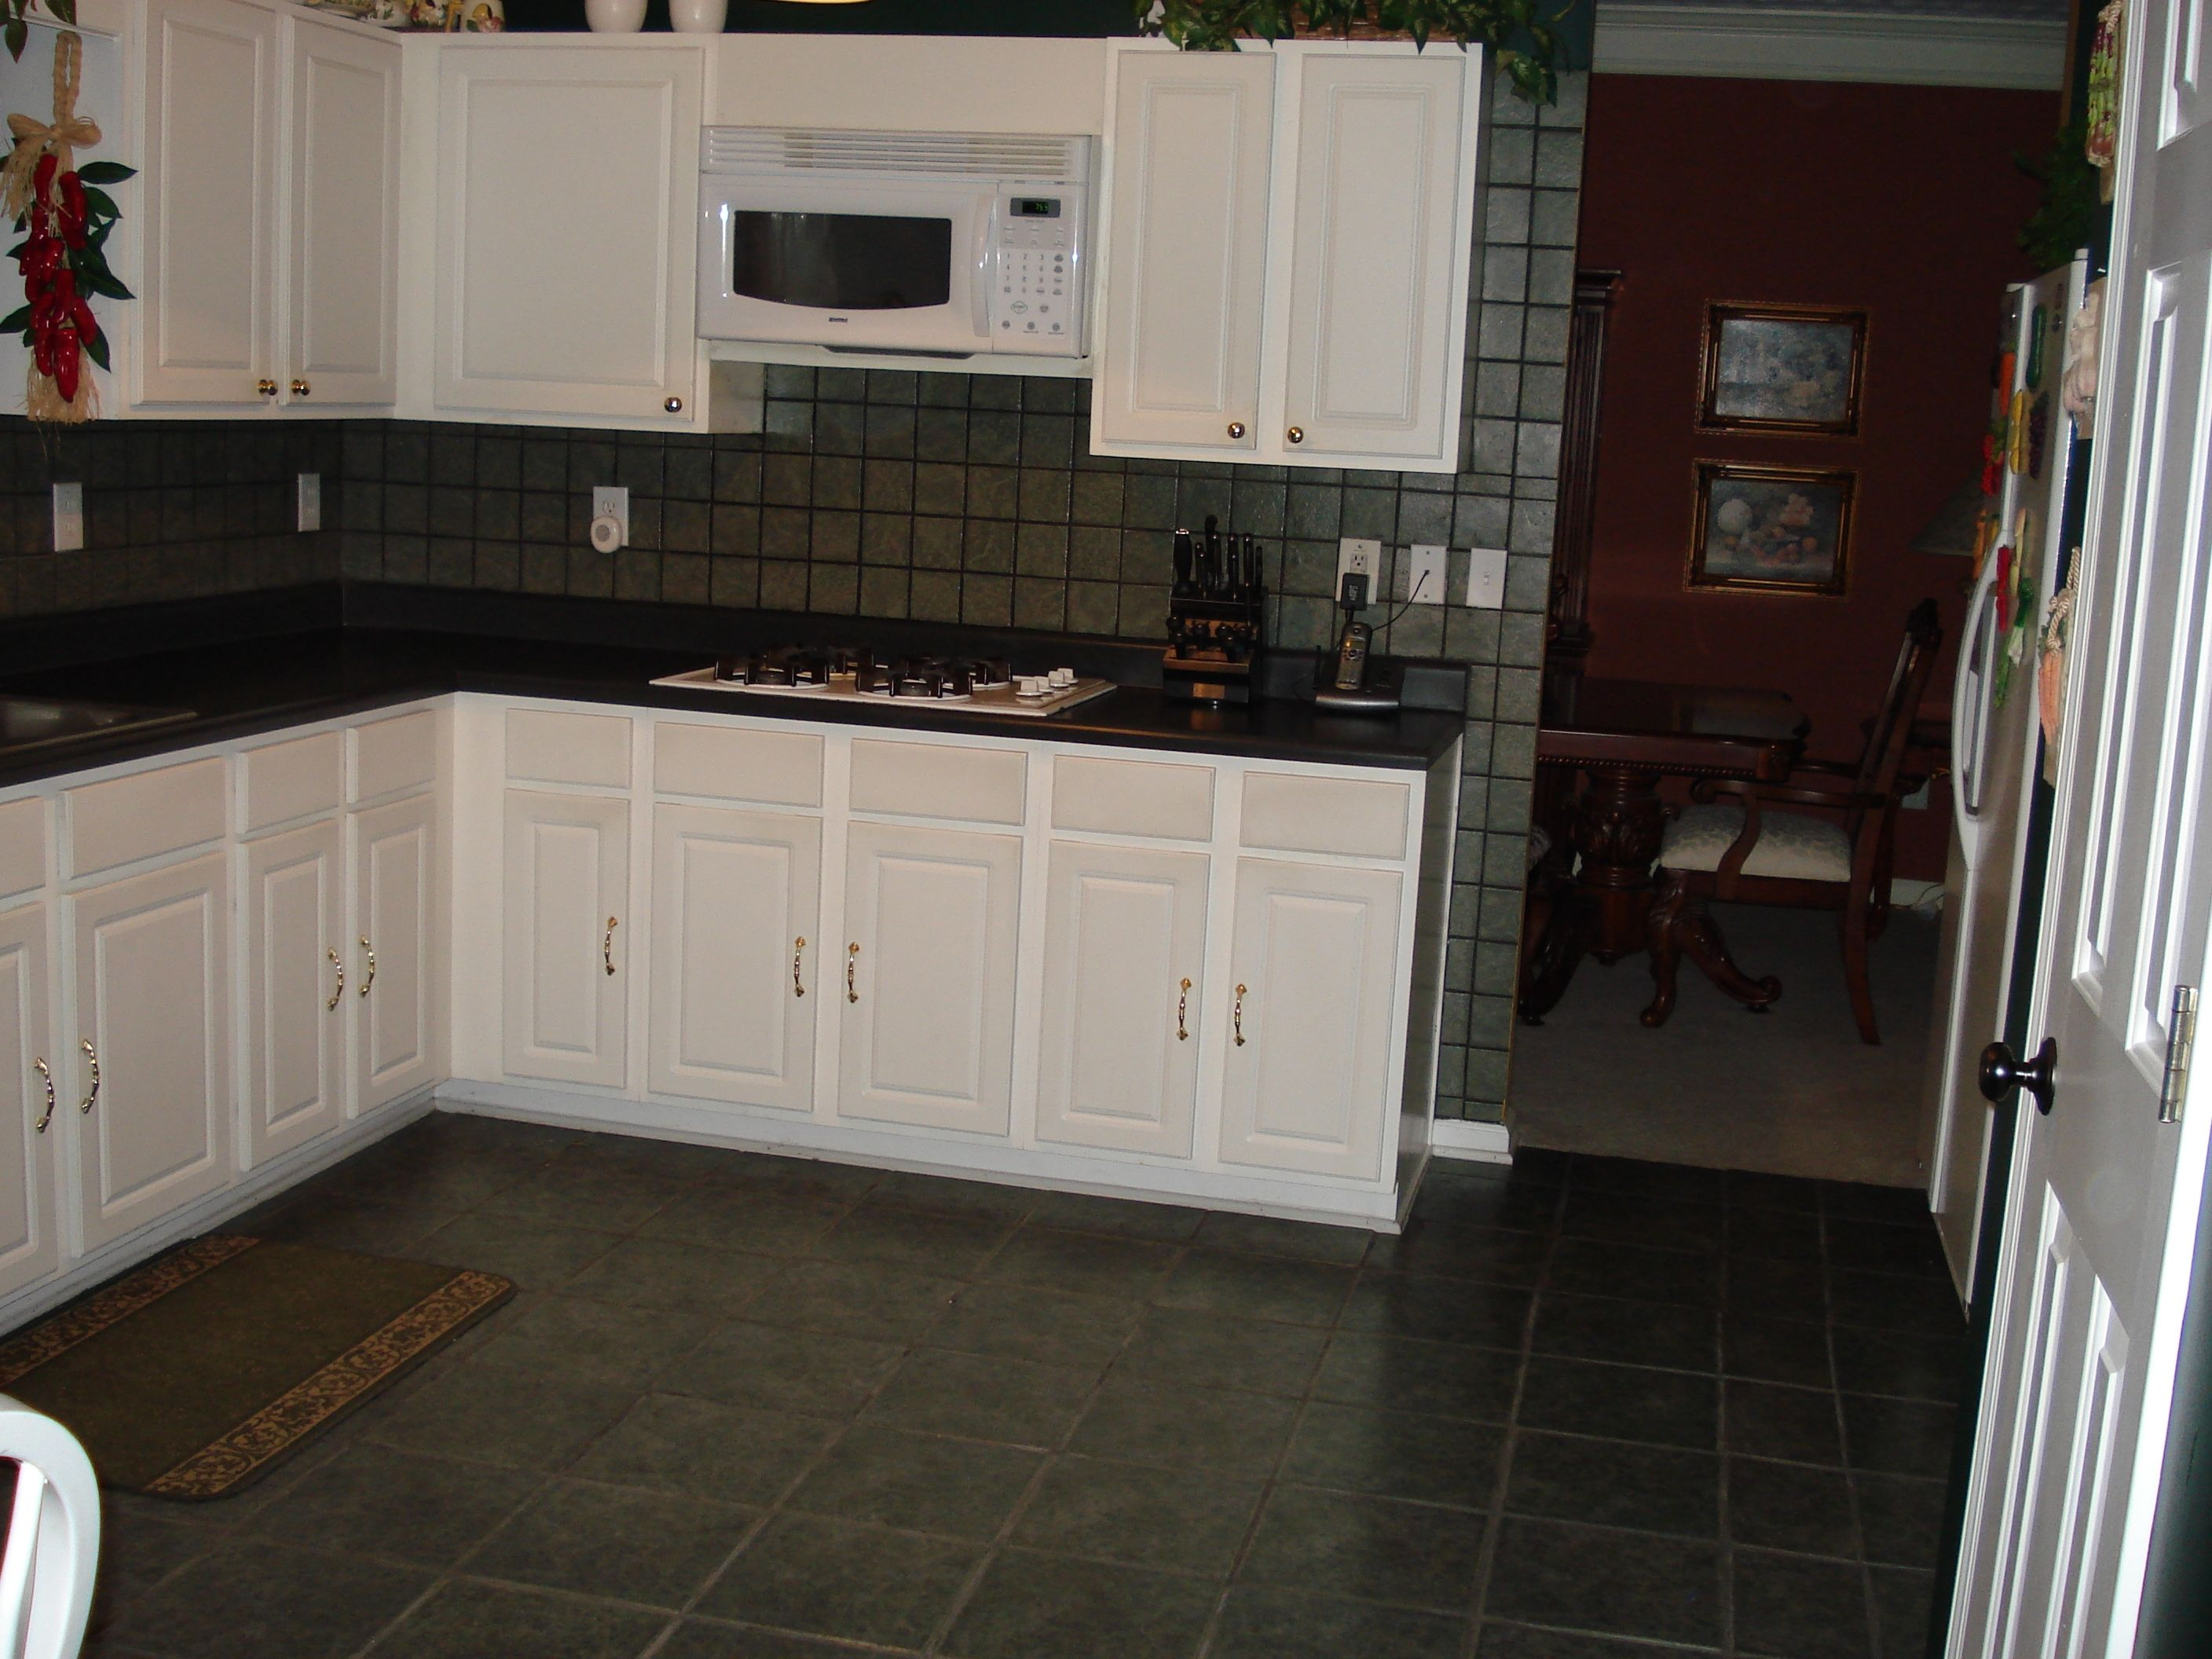 Pictures of kitchens with dark tile floors httpweb4top awesome beautiful kitchen floor tile full size of kitchen design remodeling kitchen ideas new cabinet designs doors luxury ceramic tile check more at dailygadgetfo Images